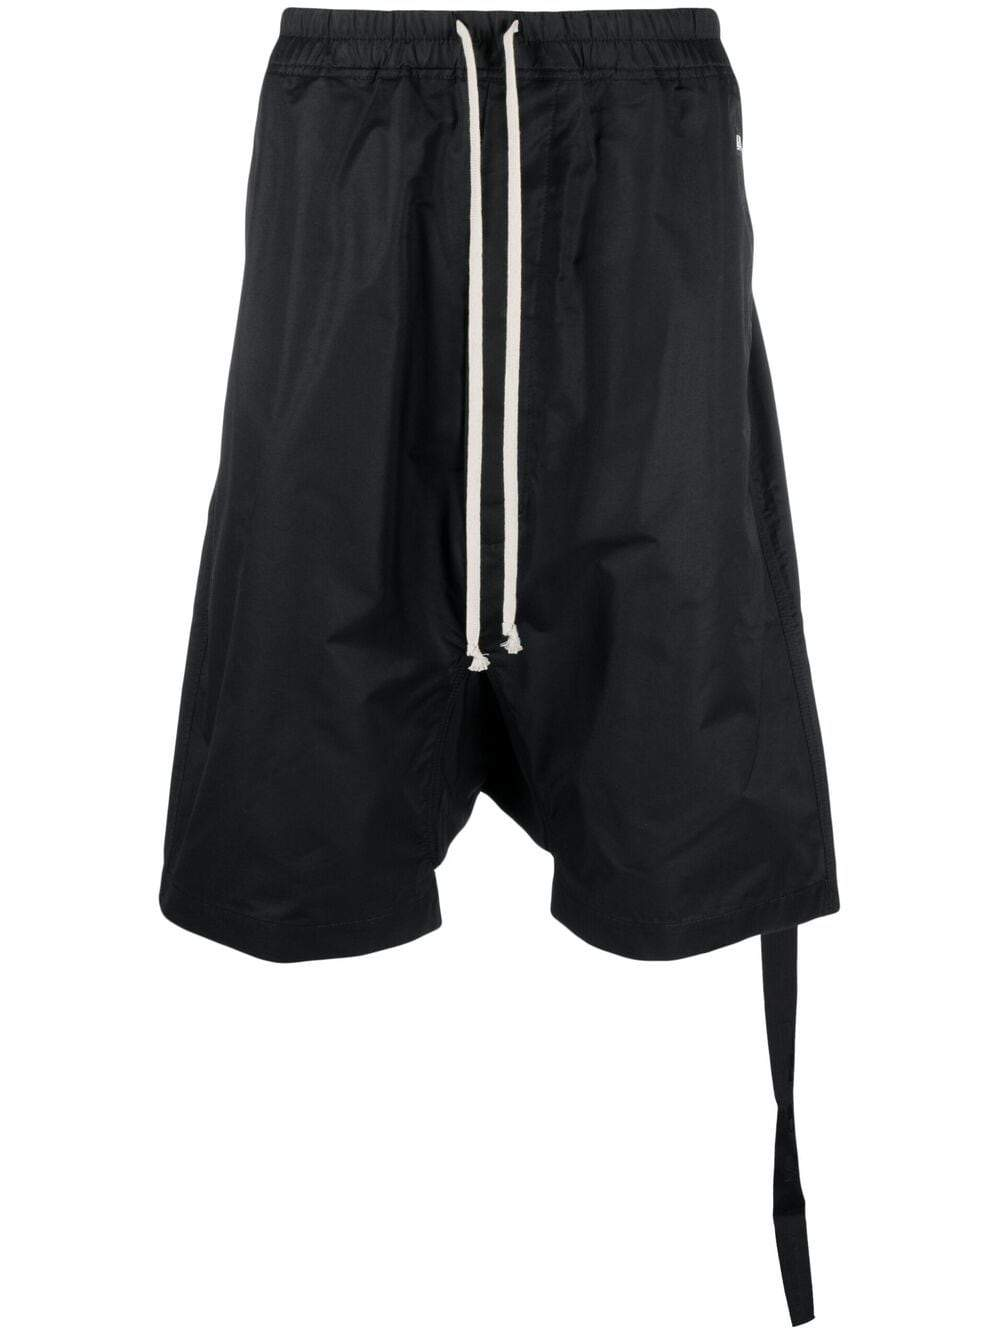 RICK OWENS DRKSHDW Drop-crotch shorts Black